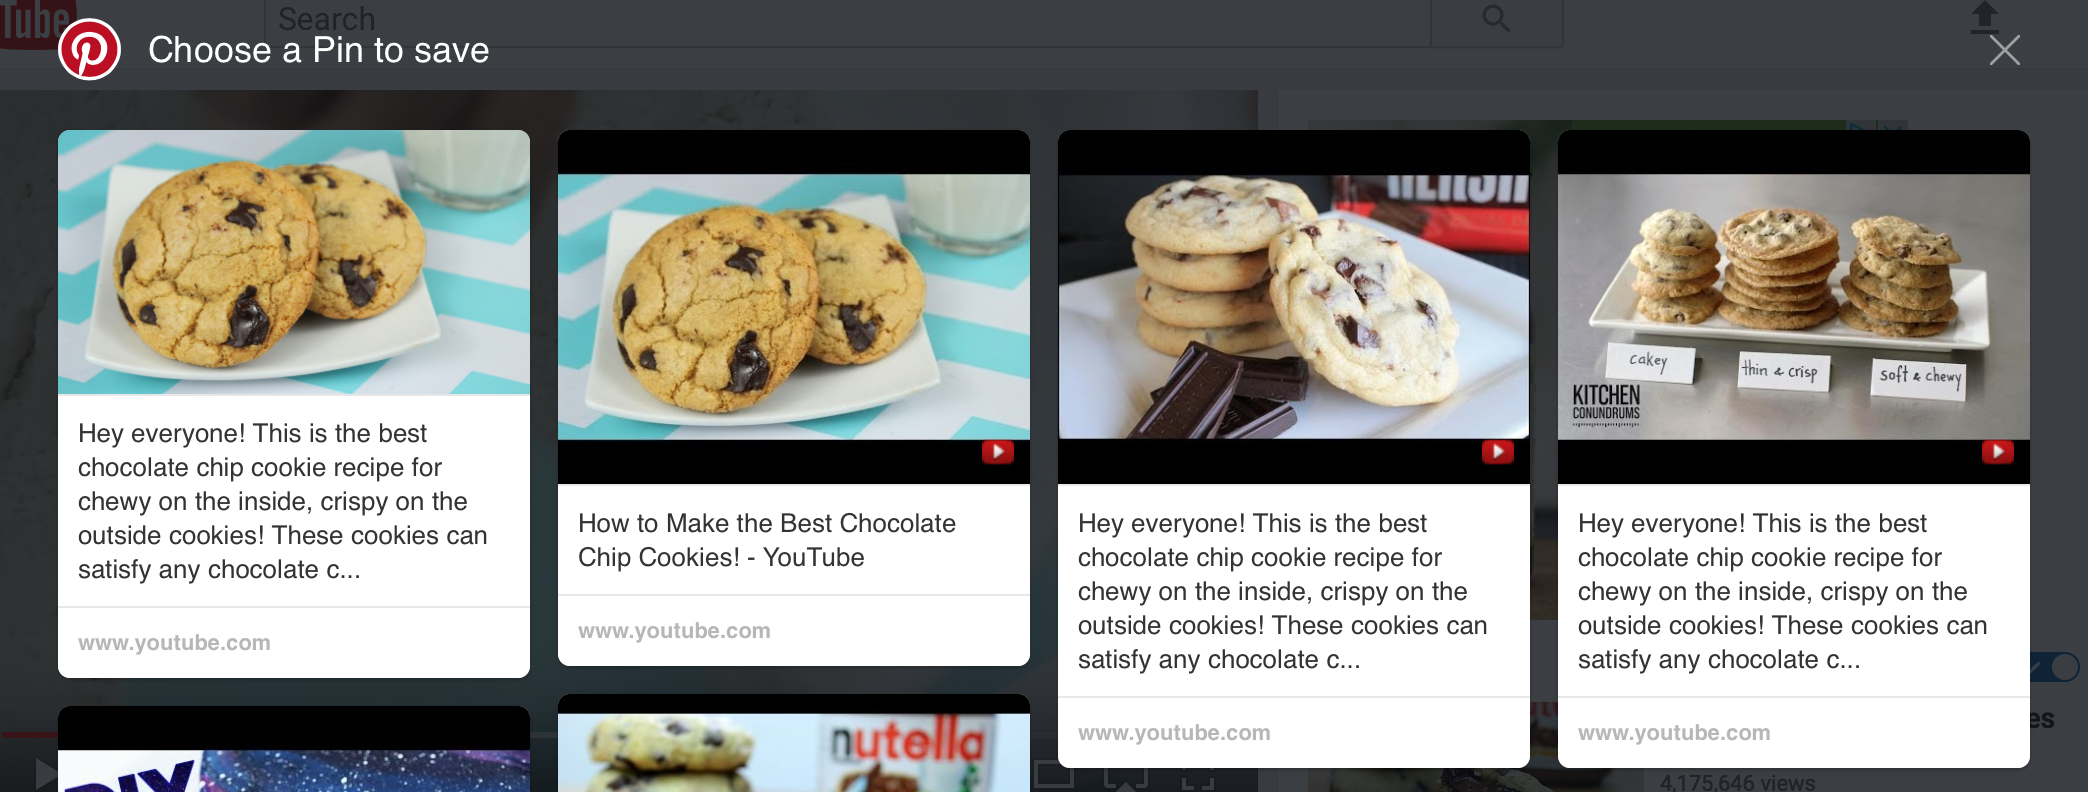 How to Use Pinterest's Native Video Player